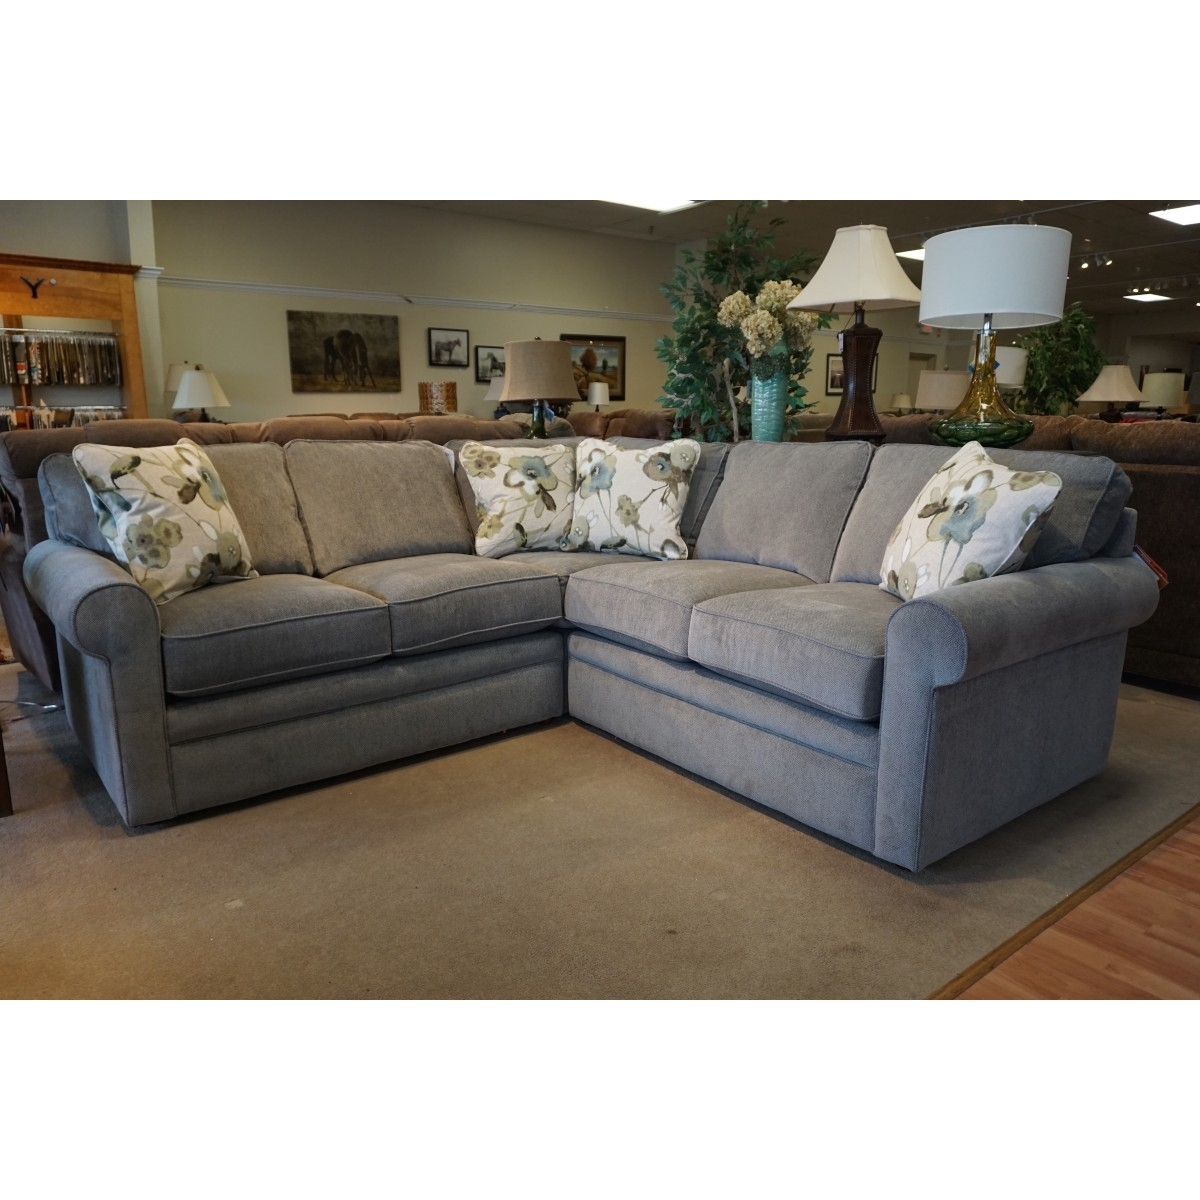 Awesome Lazy Boy Sectional Prices 34 About Remodel Sofas And Couches In La Z Boy Sectional Sofas (Image 1 of 10)